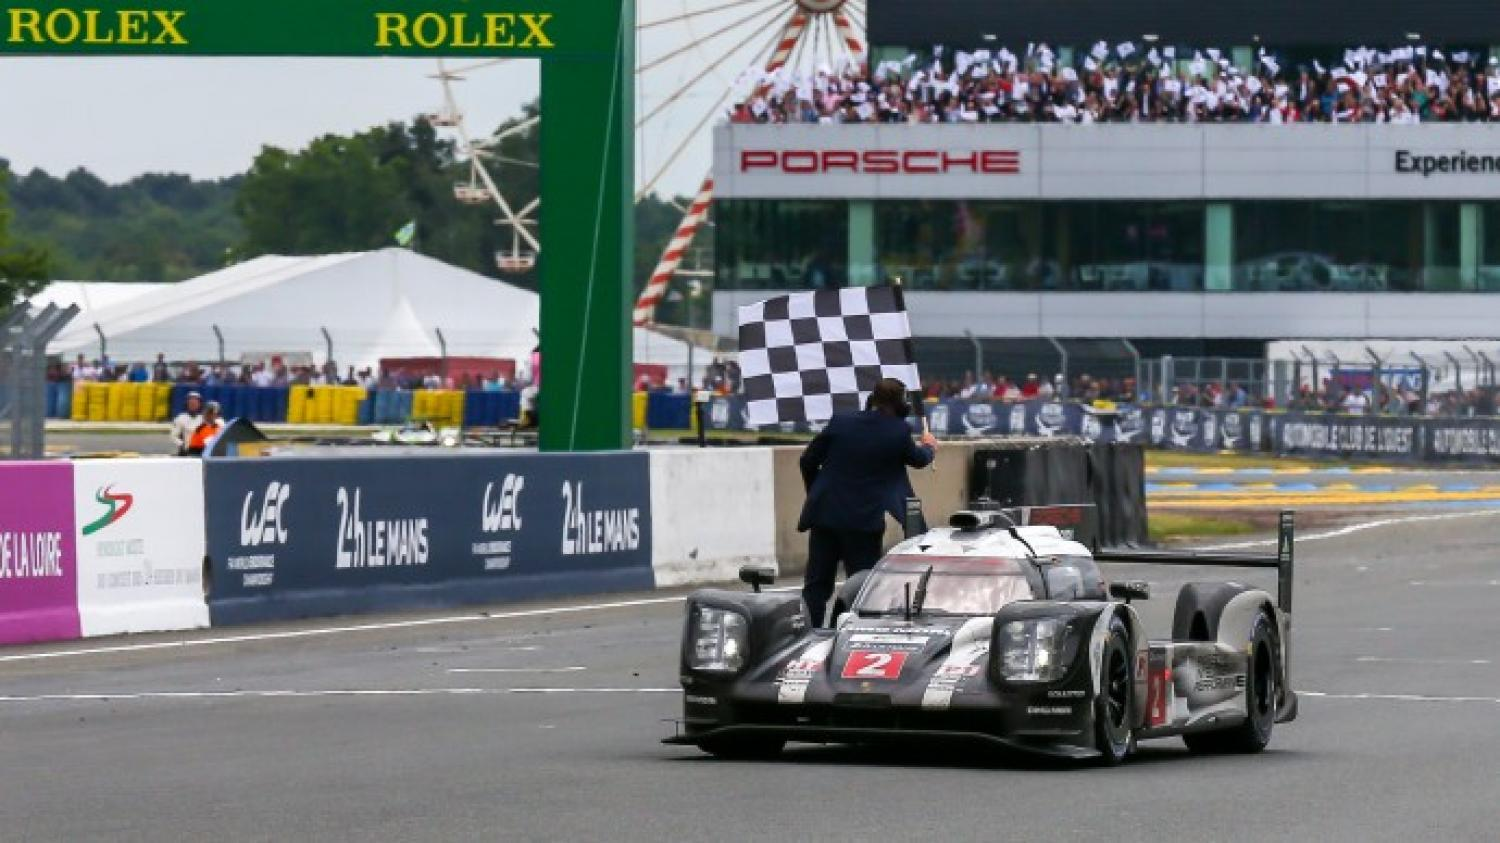 Porsche clinches a last minute victory in the 24 Hours of Le Mans!